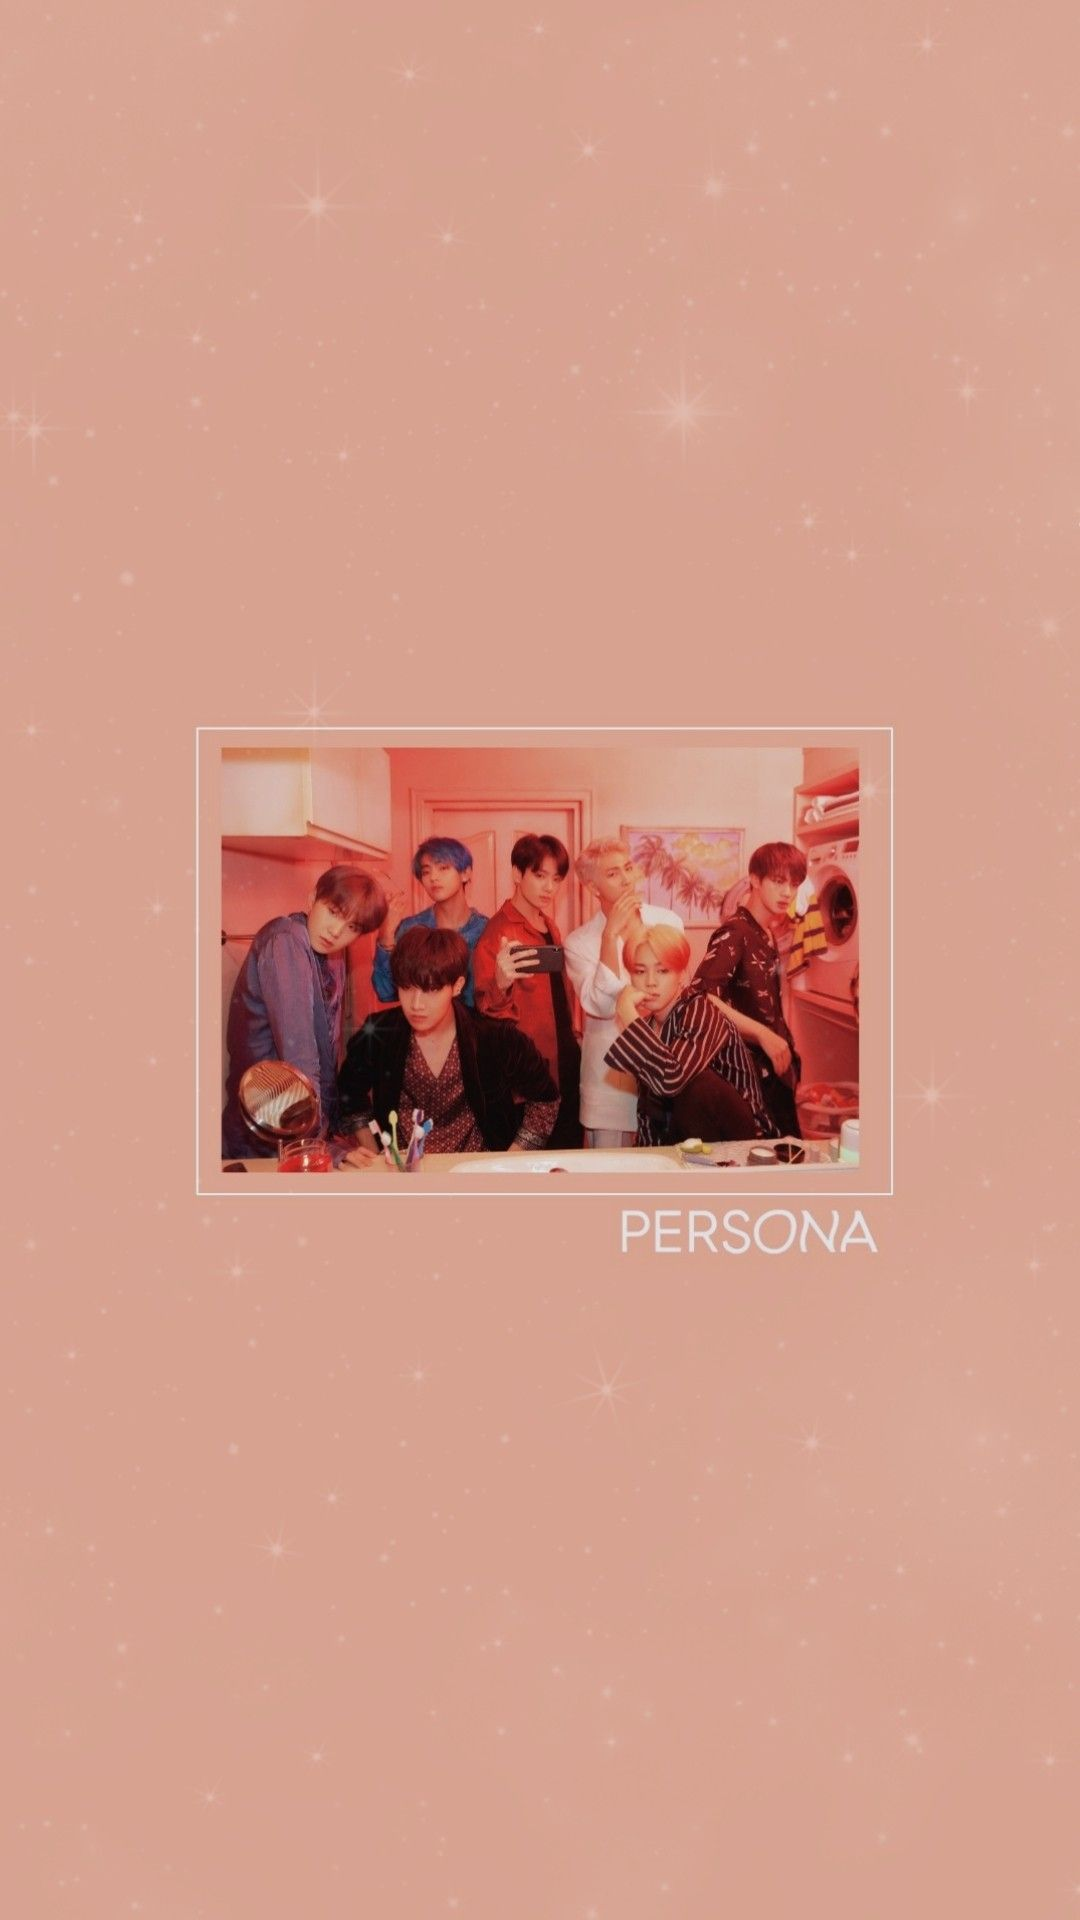 Aesthetic Iphone Bts Wallpaper Hd   1080x1920 Wallpaper   teahubio 1080x1920